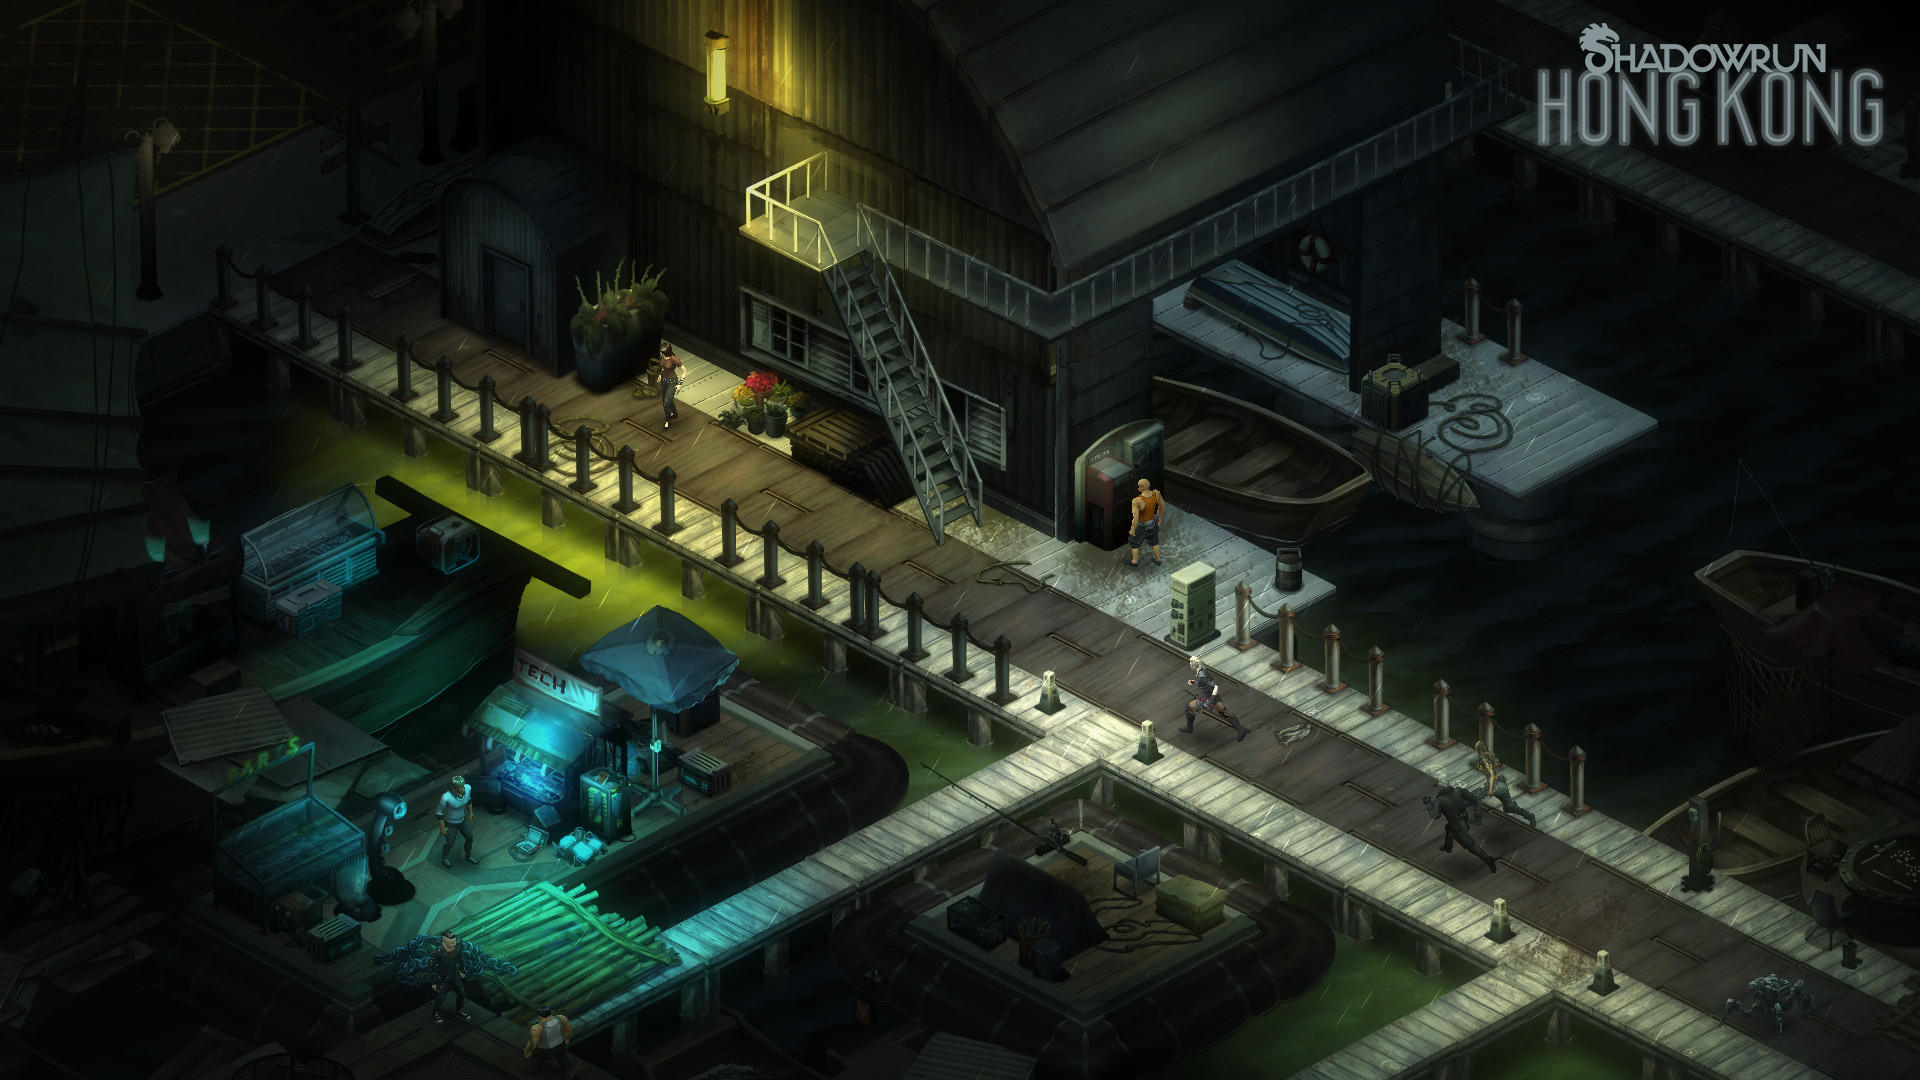 Shadowrun: Hong Kong - Extended Edition Upgrade to Deluxe (Add Soundtrack + Art Book PDF) game image